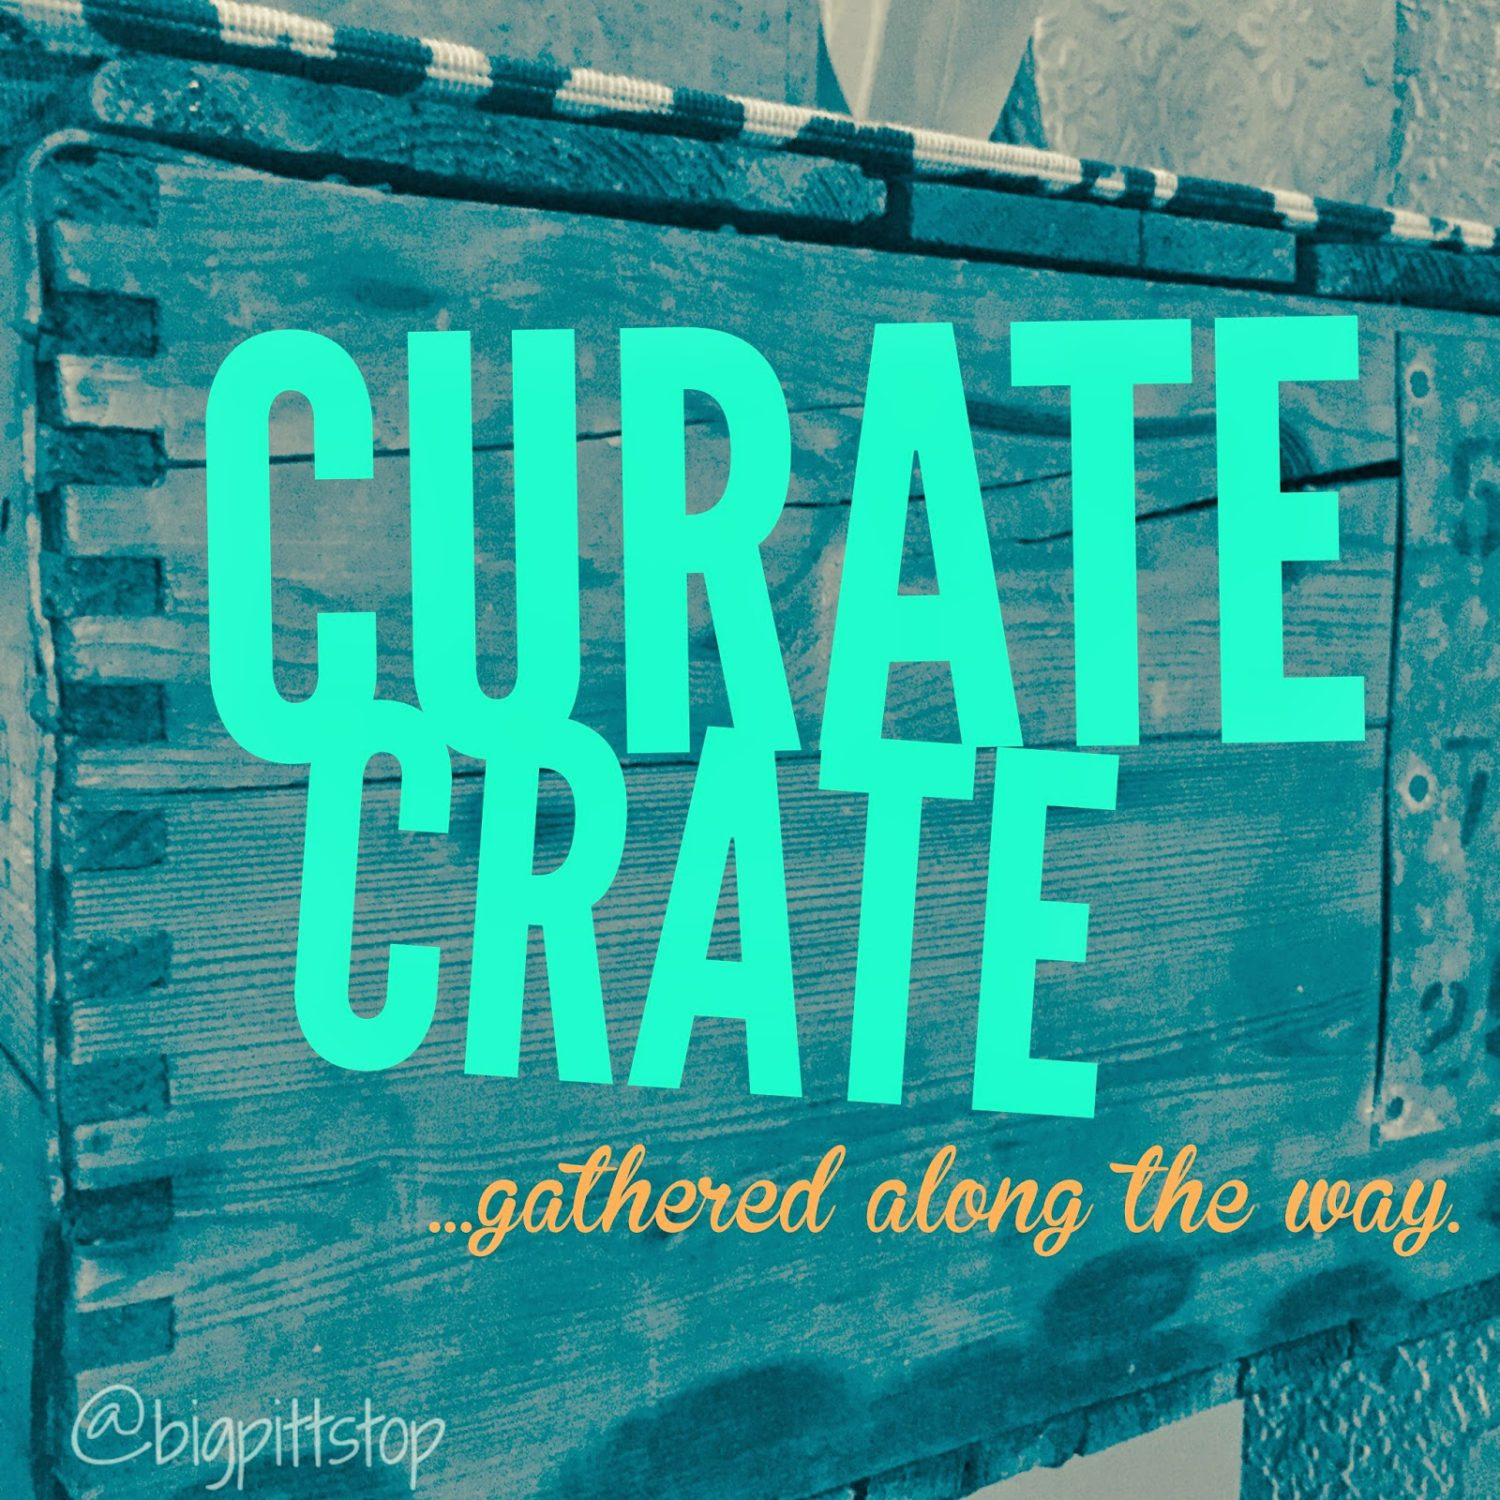 curate crate | april 3